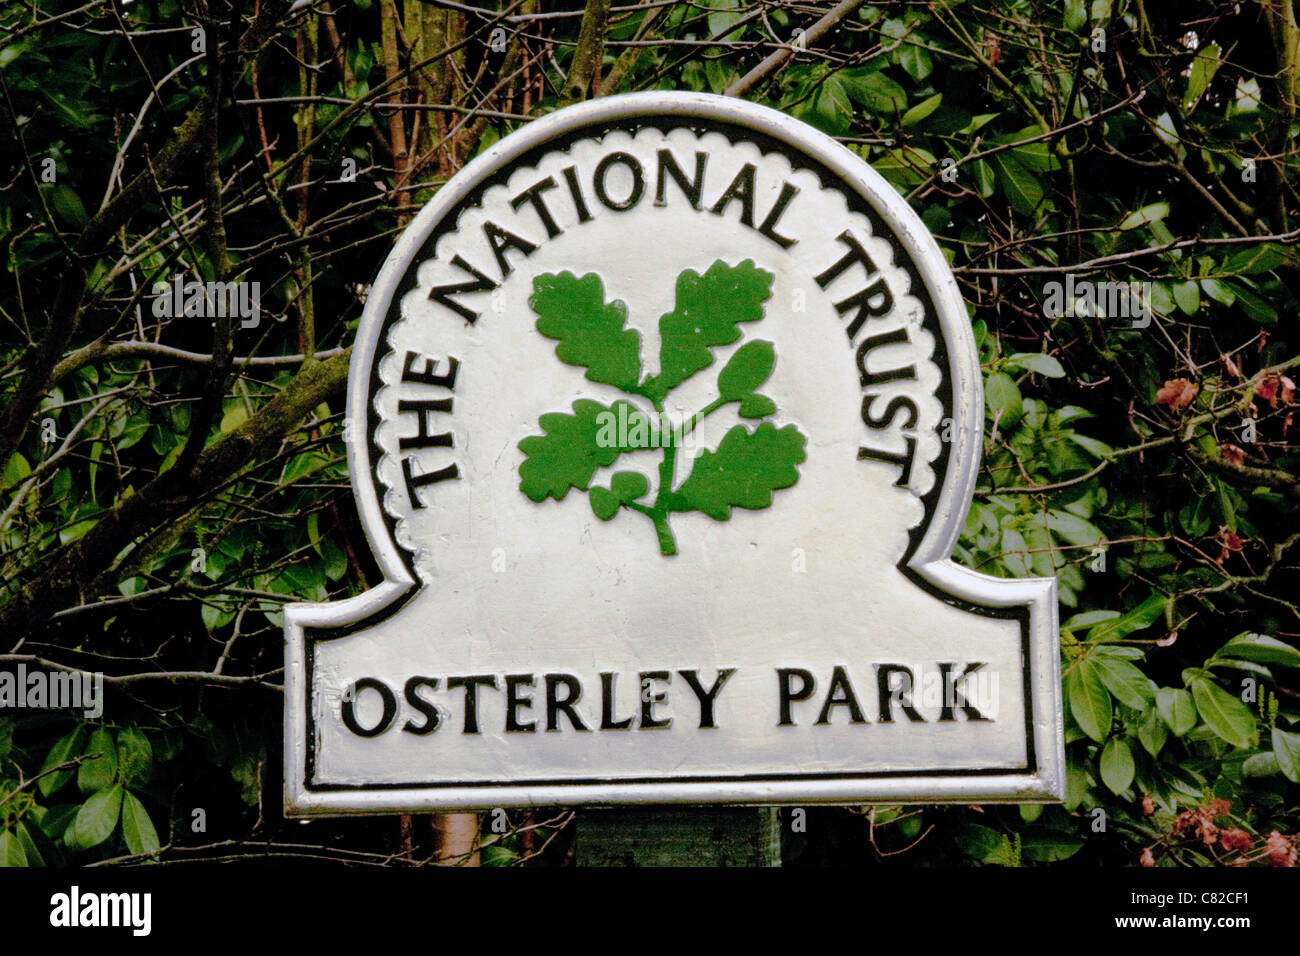 Osterley Park - The National Trust - Stock Image